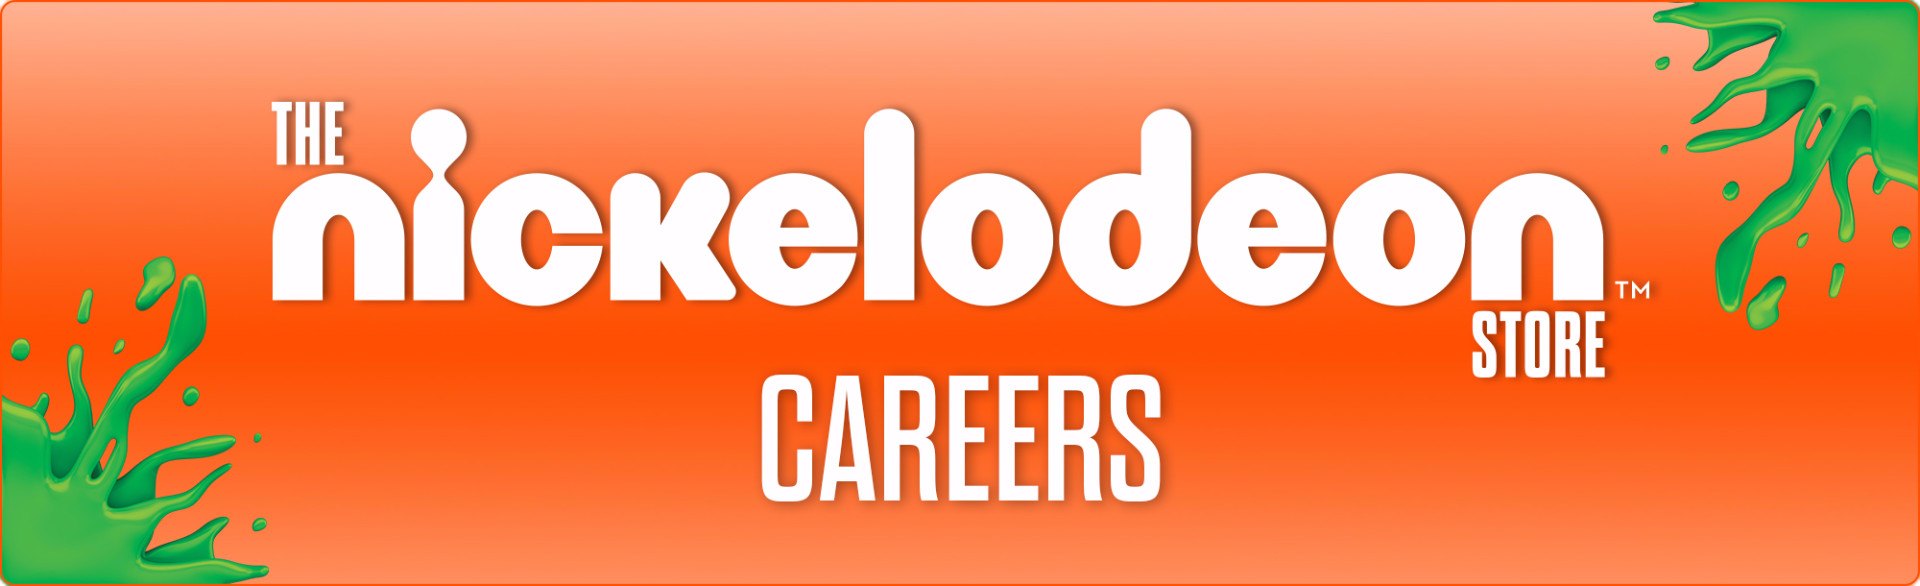 careers nickelodeonstore co uk careers